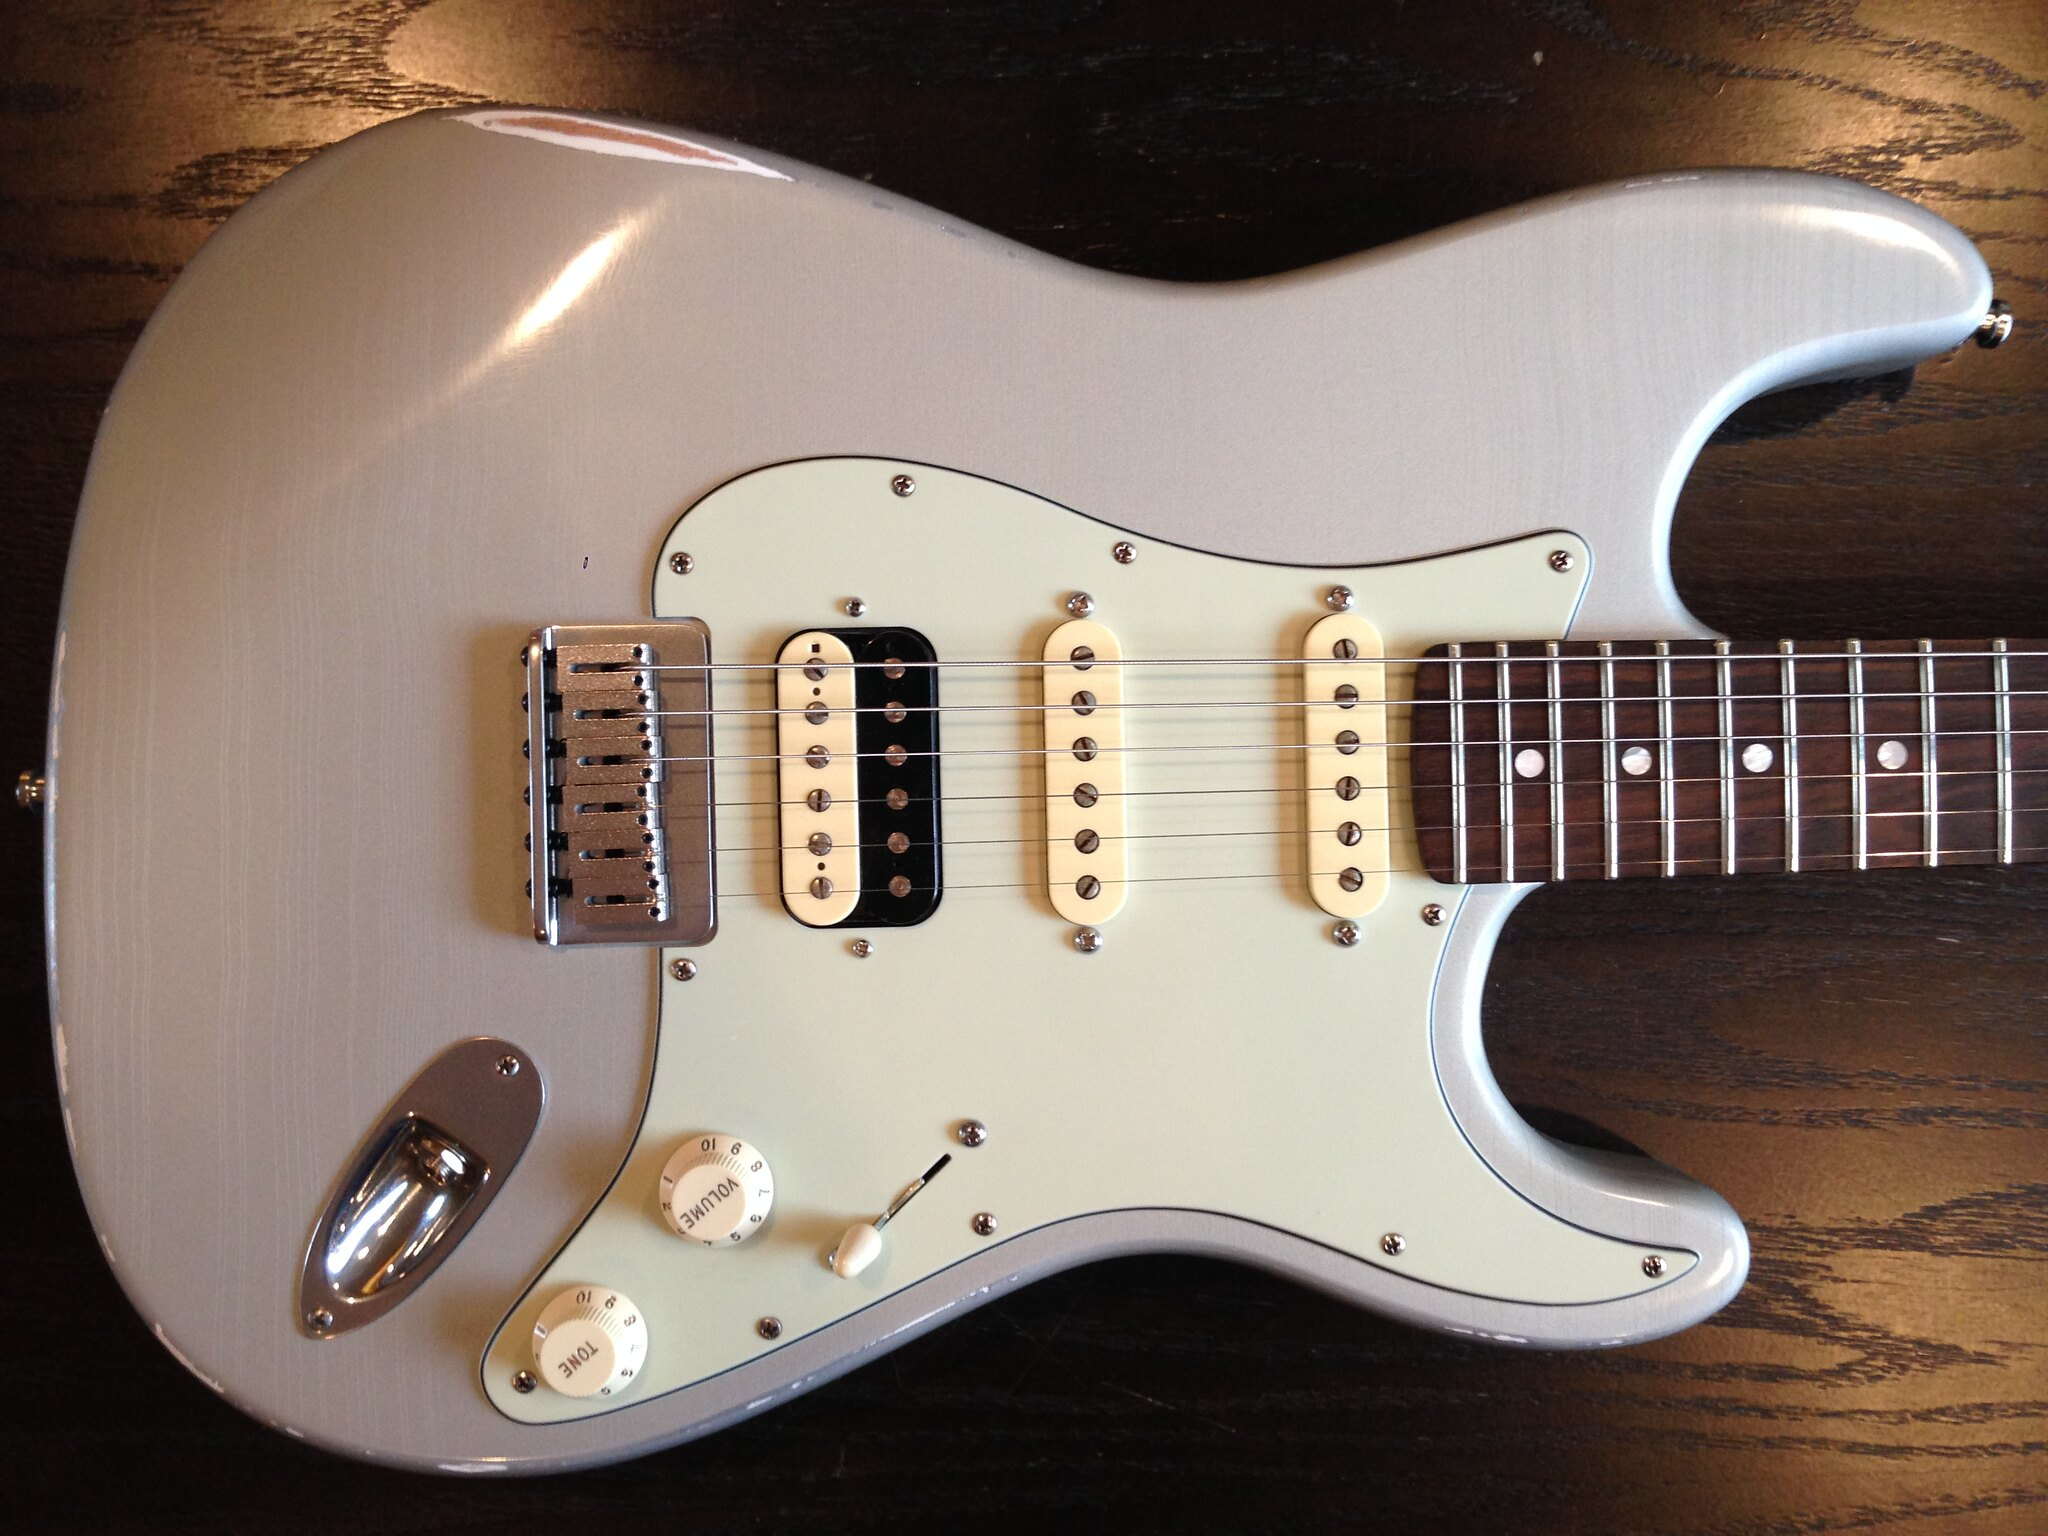 So Last Year I Had A Really Nice Strat Neck Lying Around And Got The Bug To Make HSS Superstrat Built Killer Premium Tonewood Relicd Beauty